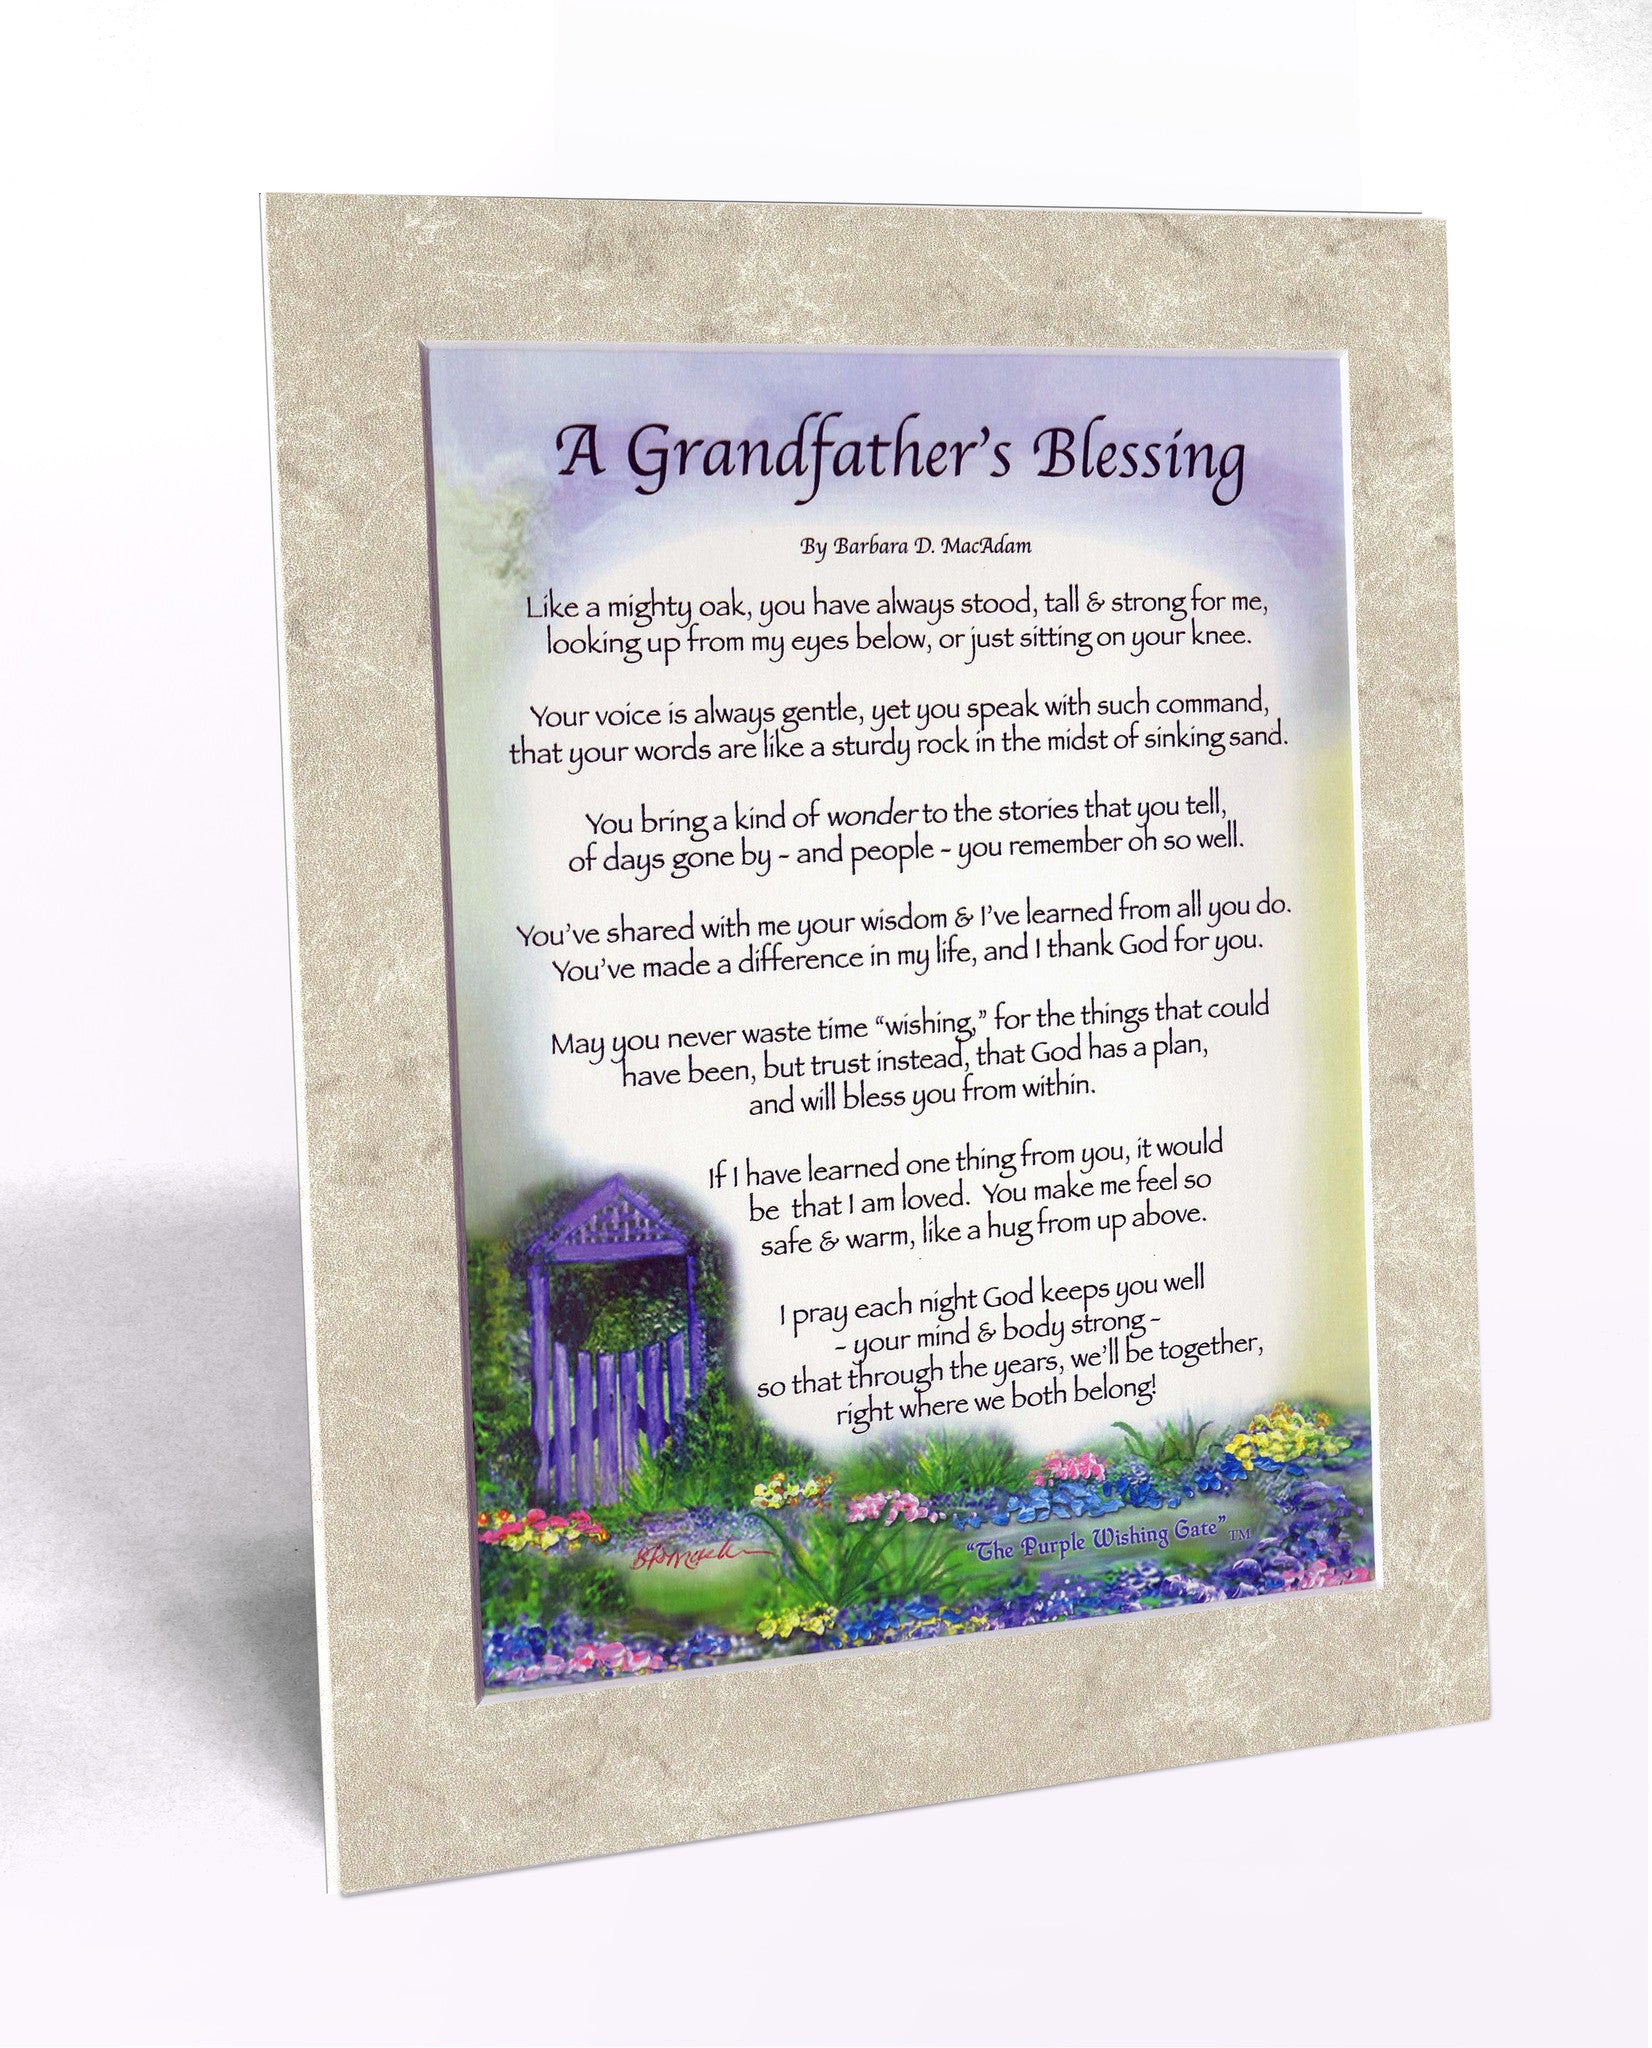 A Grandfather's Blessing (8x10) - 8x10 Custom Matted Clearance - PurpleWishingGate.com